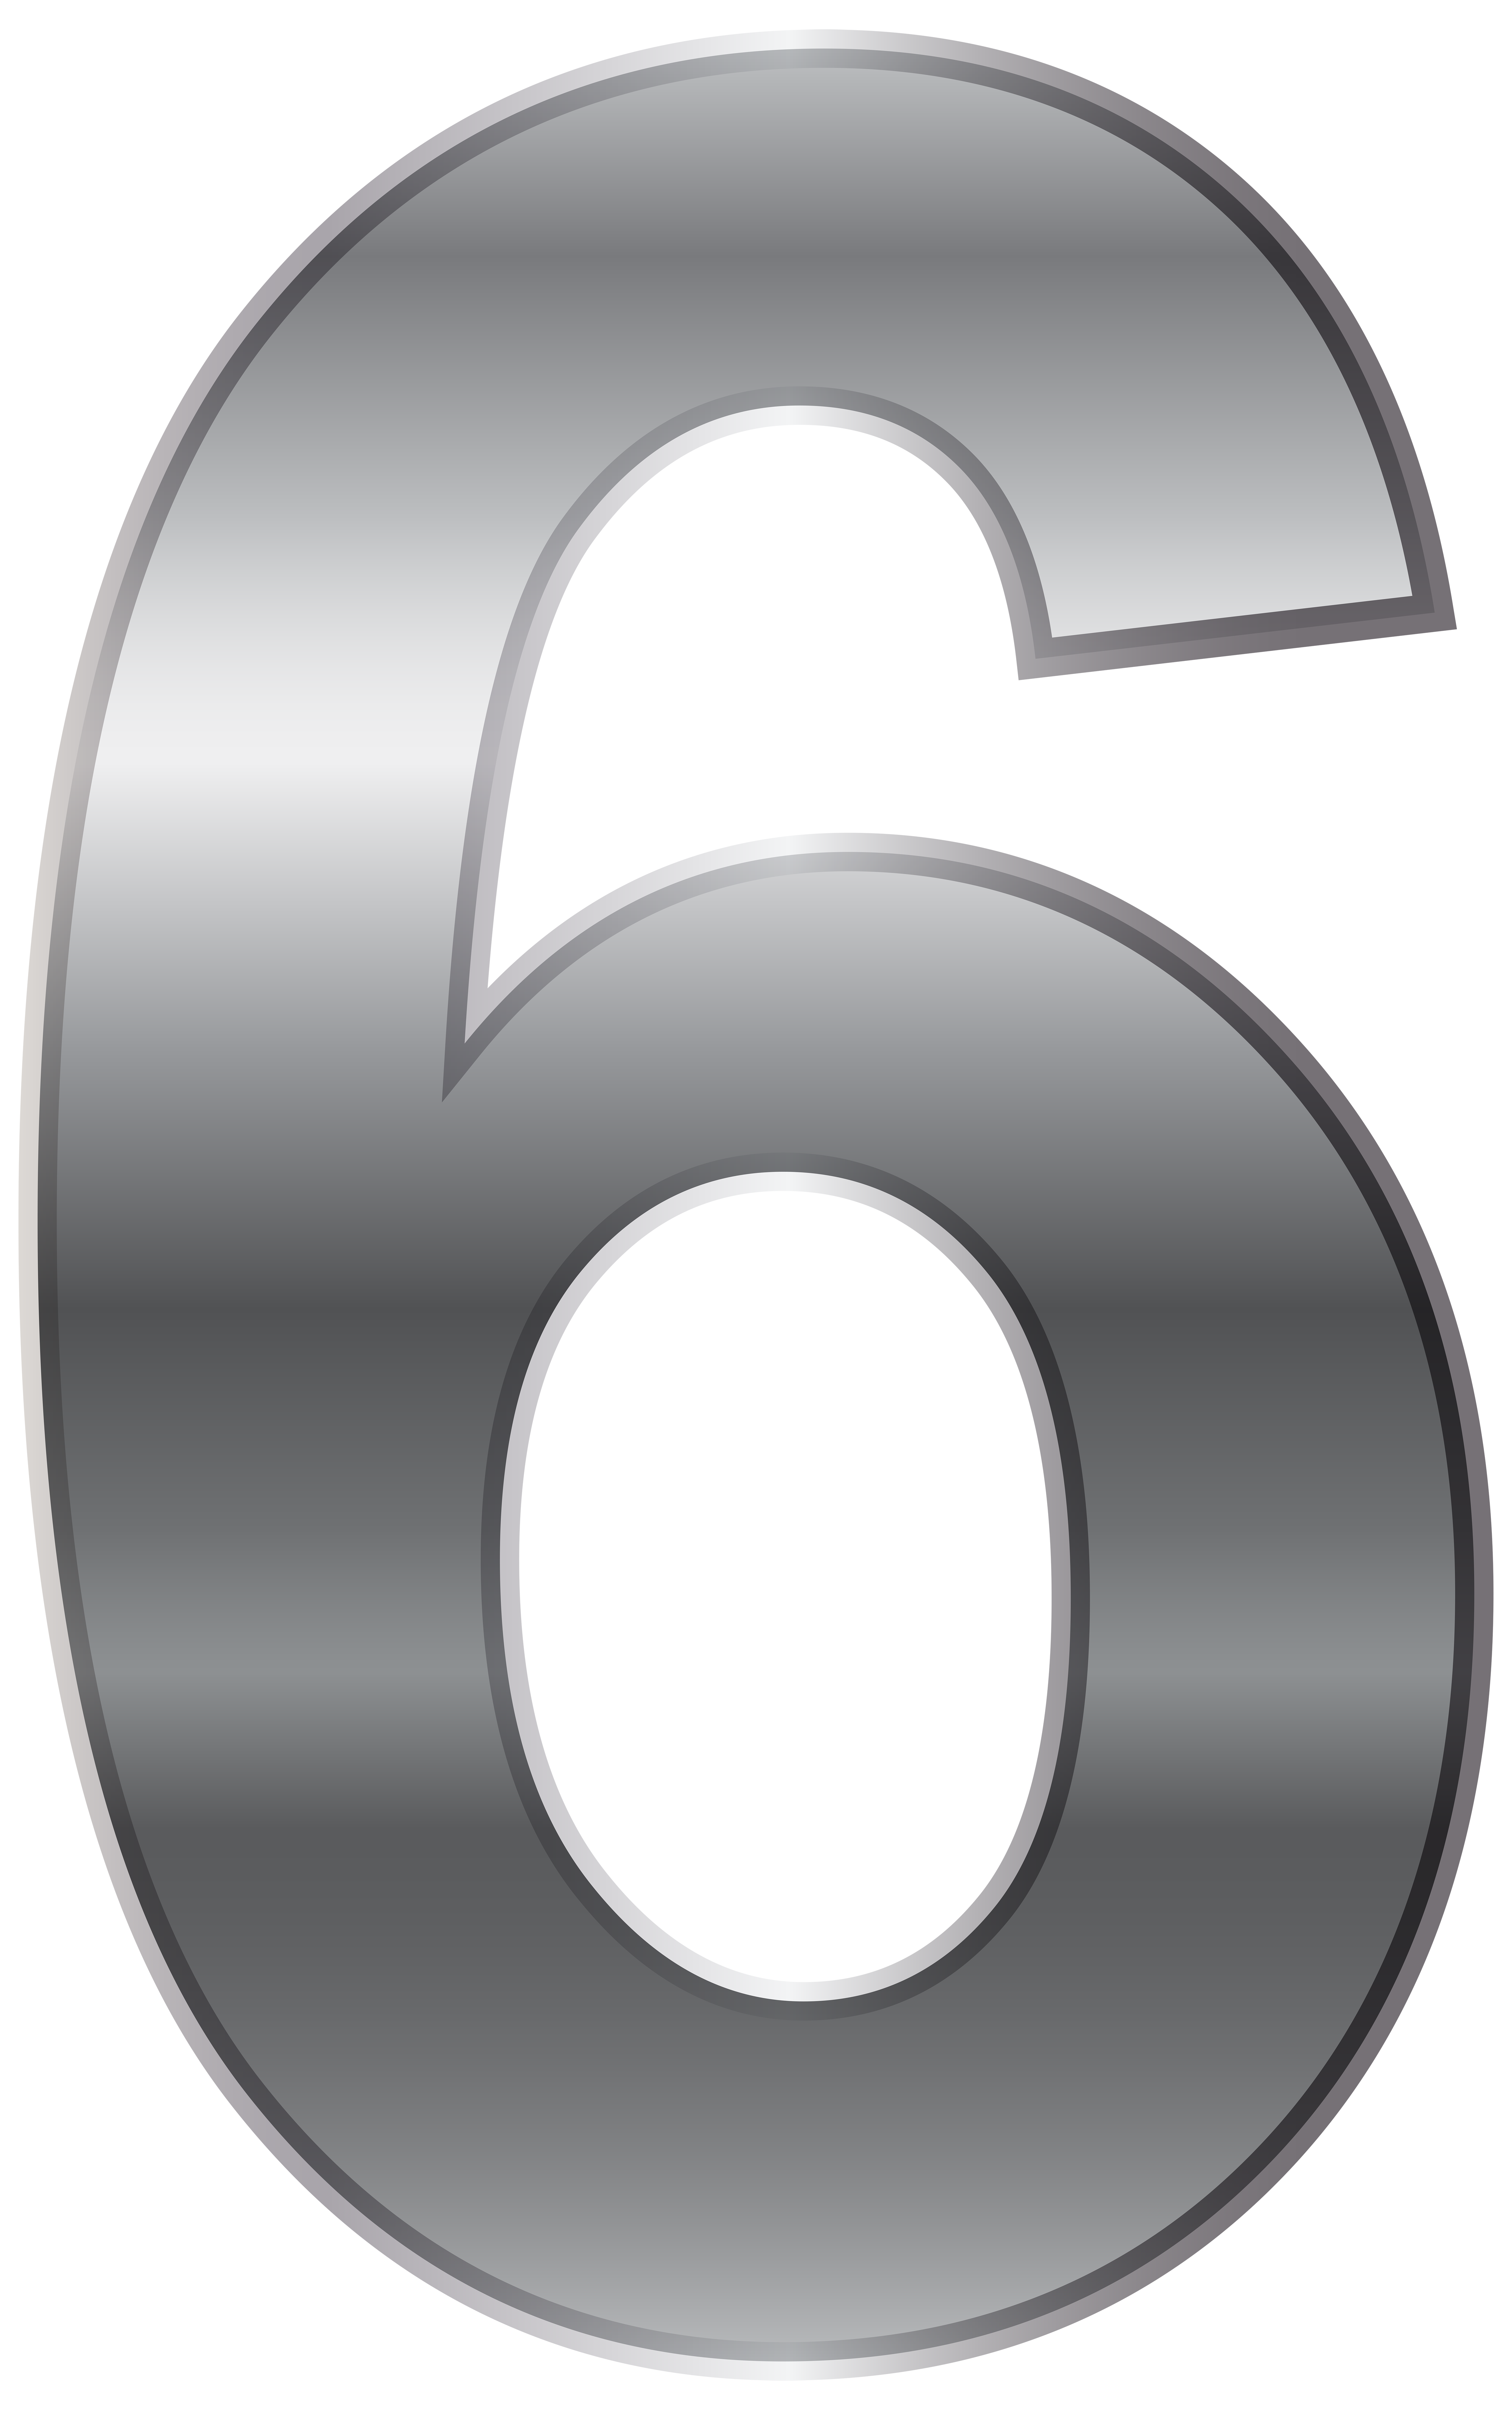 Silver number png transparent. Ice clipart six